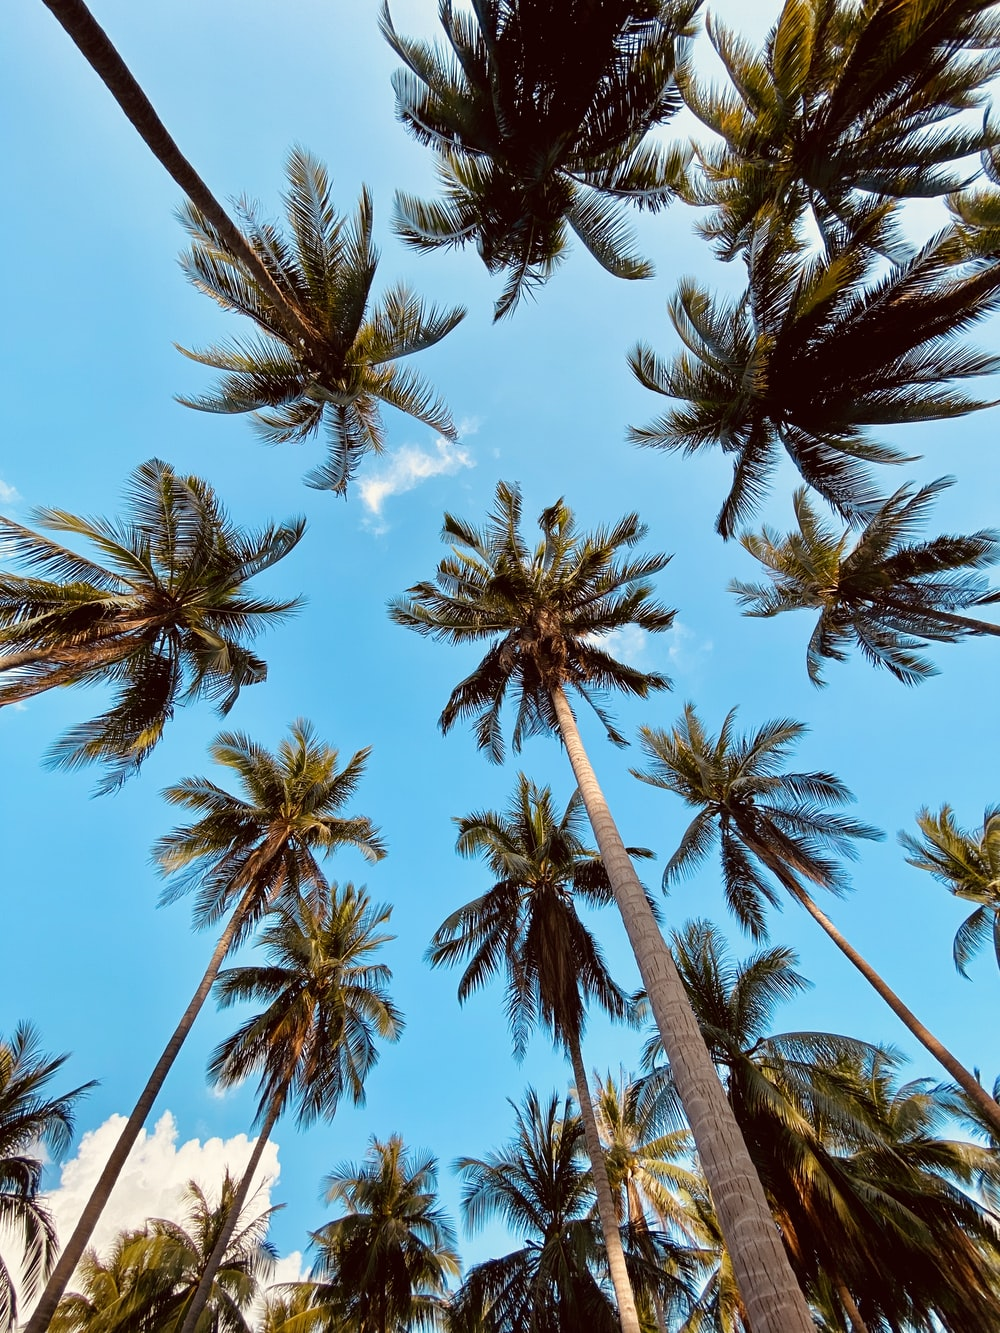 low angle photography of palm trees under blue sky during daytime